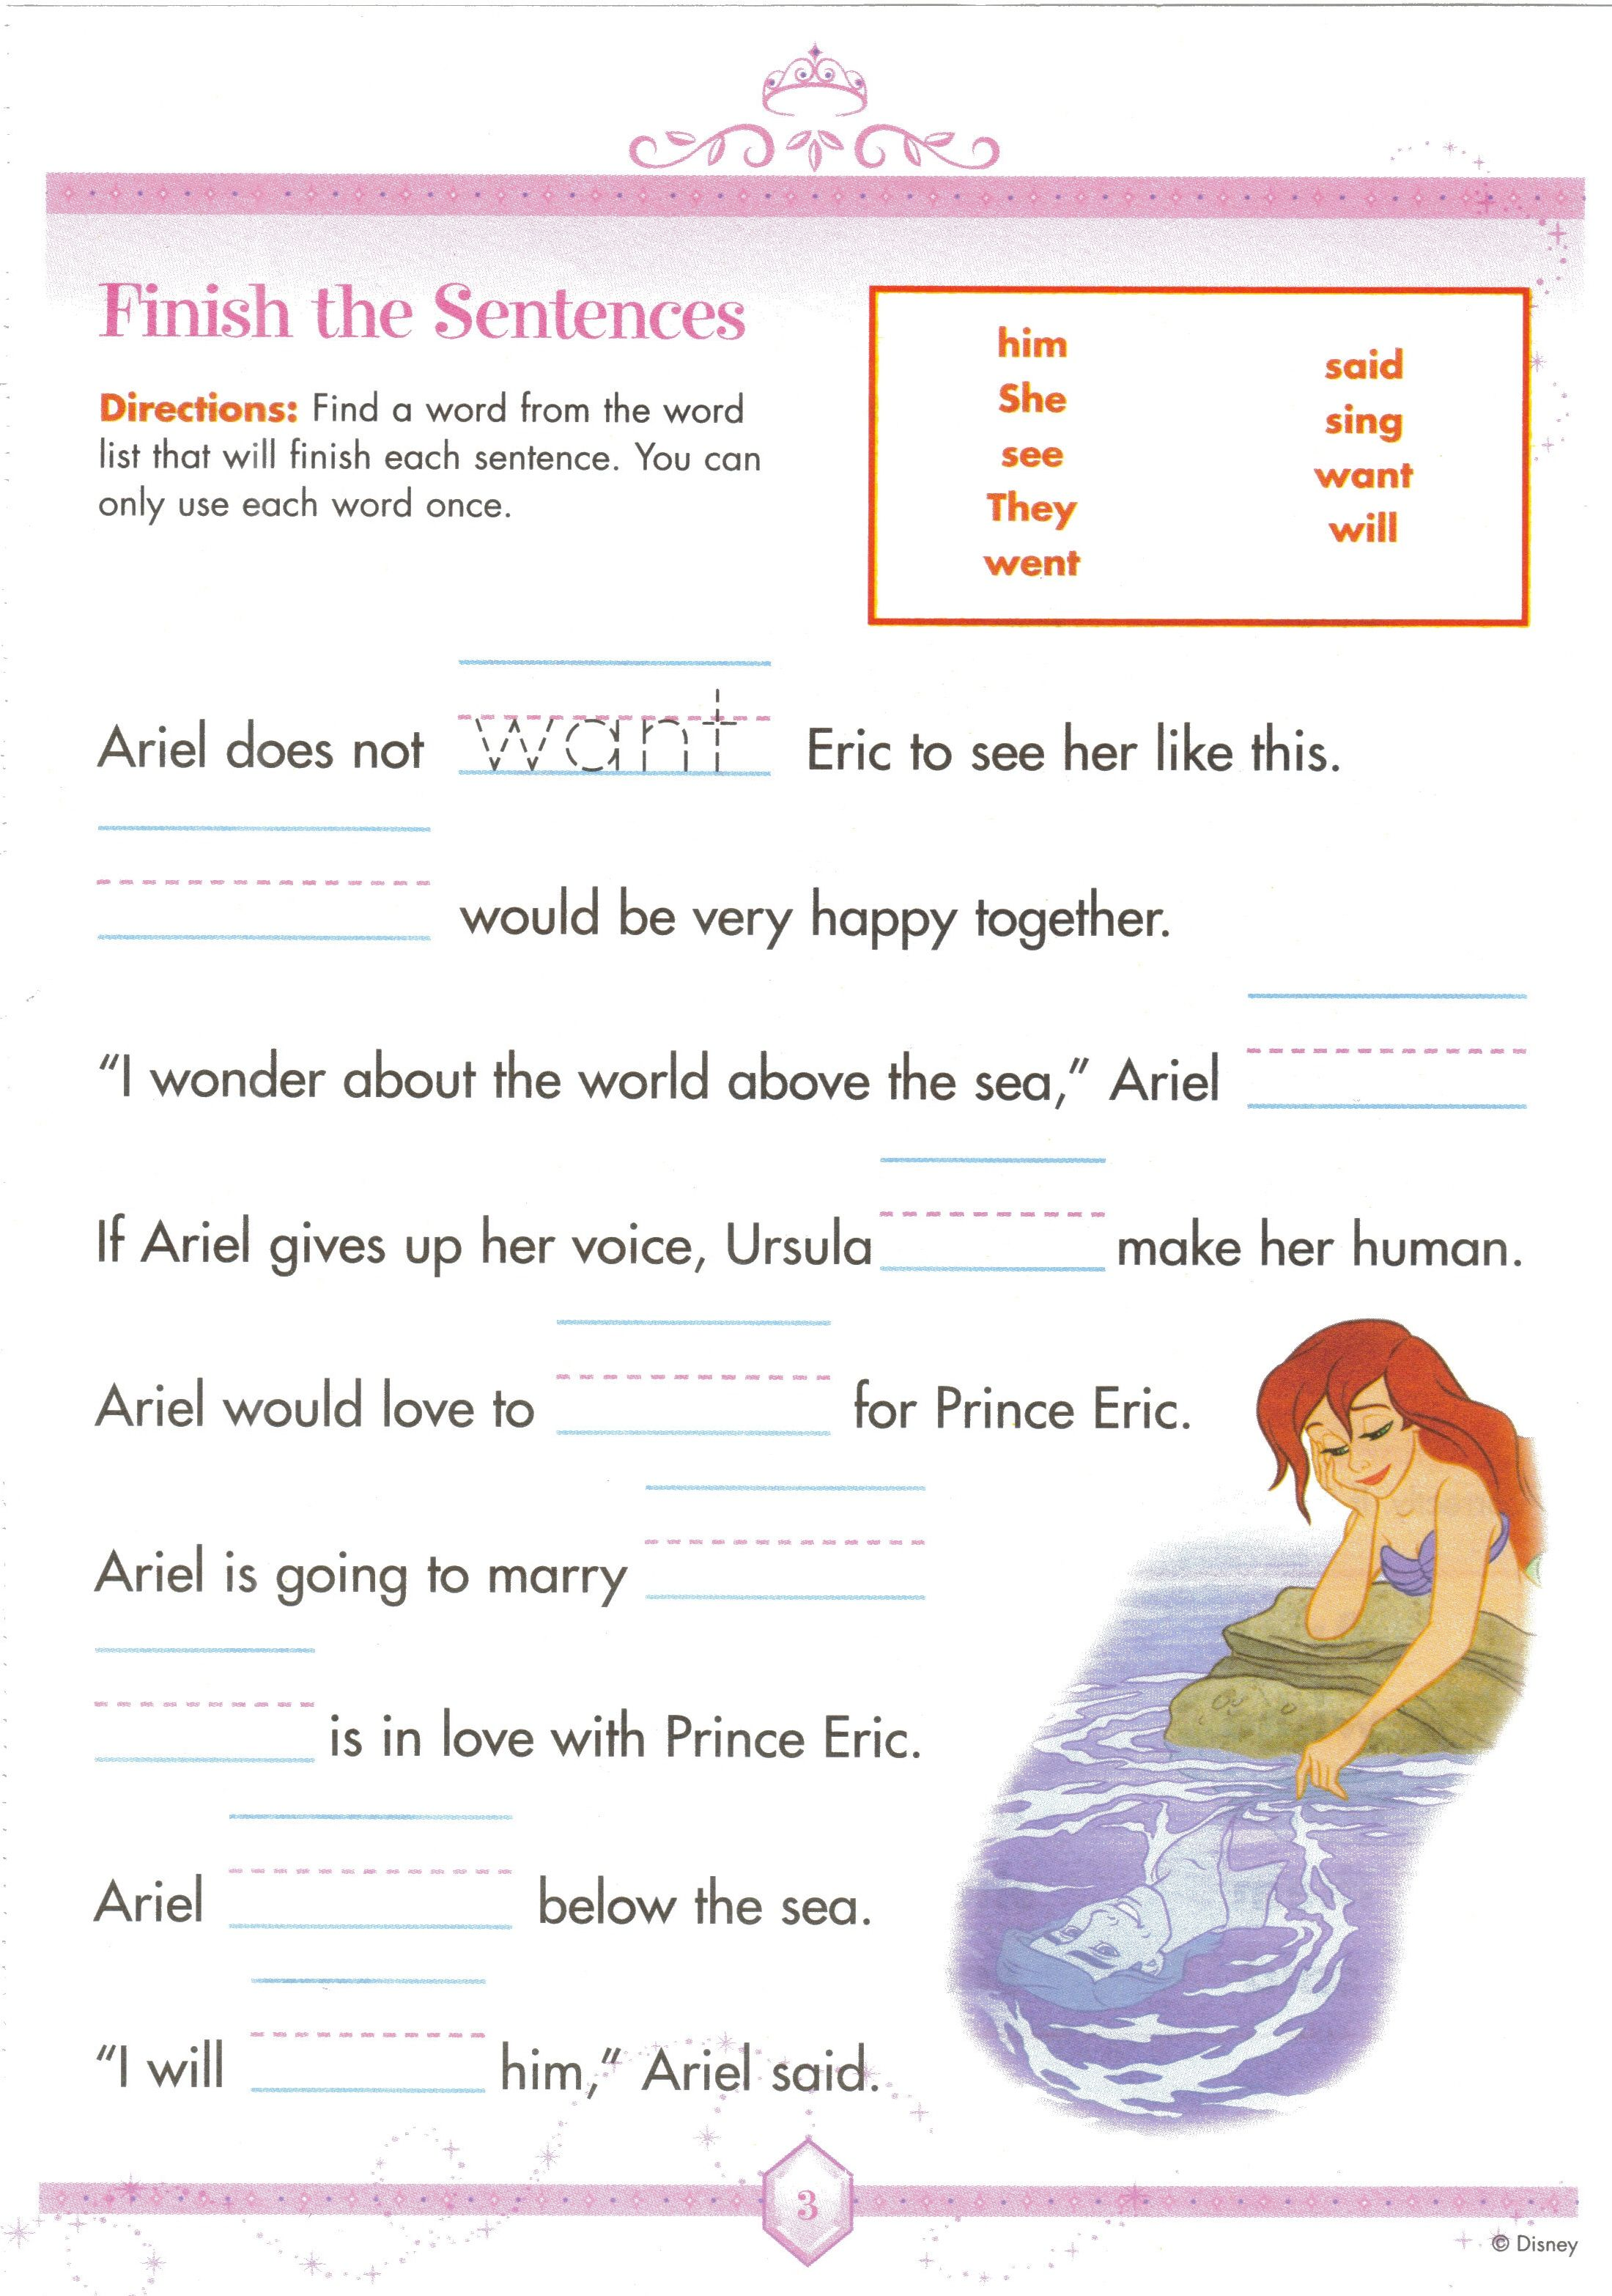 Weirdmailus  Winsome  Images About Worksheets On Pinterest  Fun Facts For Kids  With Remarkable  Images About Worksheets On Pinterest  Fun Facts For Kids Earth Day Worksheets And Jungles With Easy On The Eye Free Printable Maths Worksheets For Grade  Also Free French Grammar Worksheets In Addition Free Printable Maths Worksheets Ks And Worksheets For Preschool Alphabet As Well As Units Conversion Worksheet Additionally Goal Setting Worksheet For Teenagers From Pinterestcom With Weirdmailus  Remarkable  Images About Worksheets On Pinterest  Fun Facts For Kids  With Easy On The Eye  Images About Worksheets On Pinterest  Fun Facts For Kids Earth Day Worksheets And Jungles And Winsome Free Printable Maths Worksheets For Grade  Also Free French Grammar Worksheets In Addition Free Printable Maths Worksheets Ks From Pinterestcom